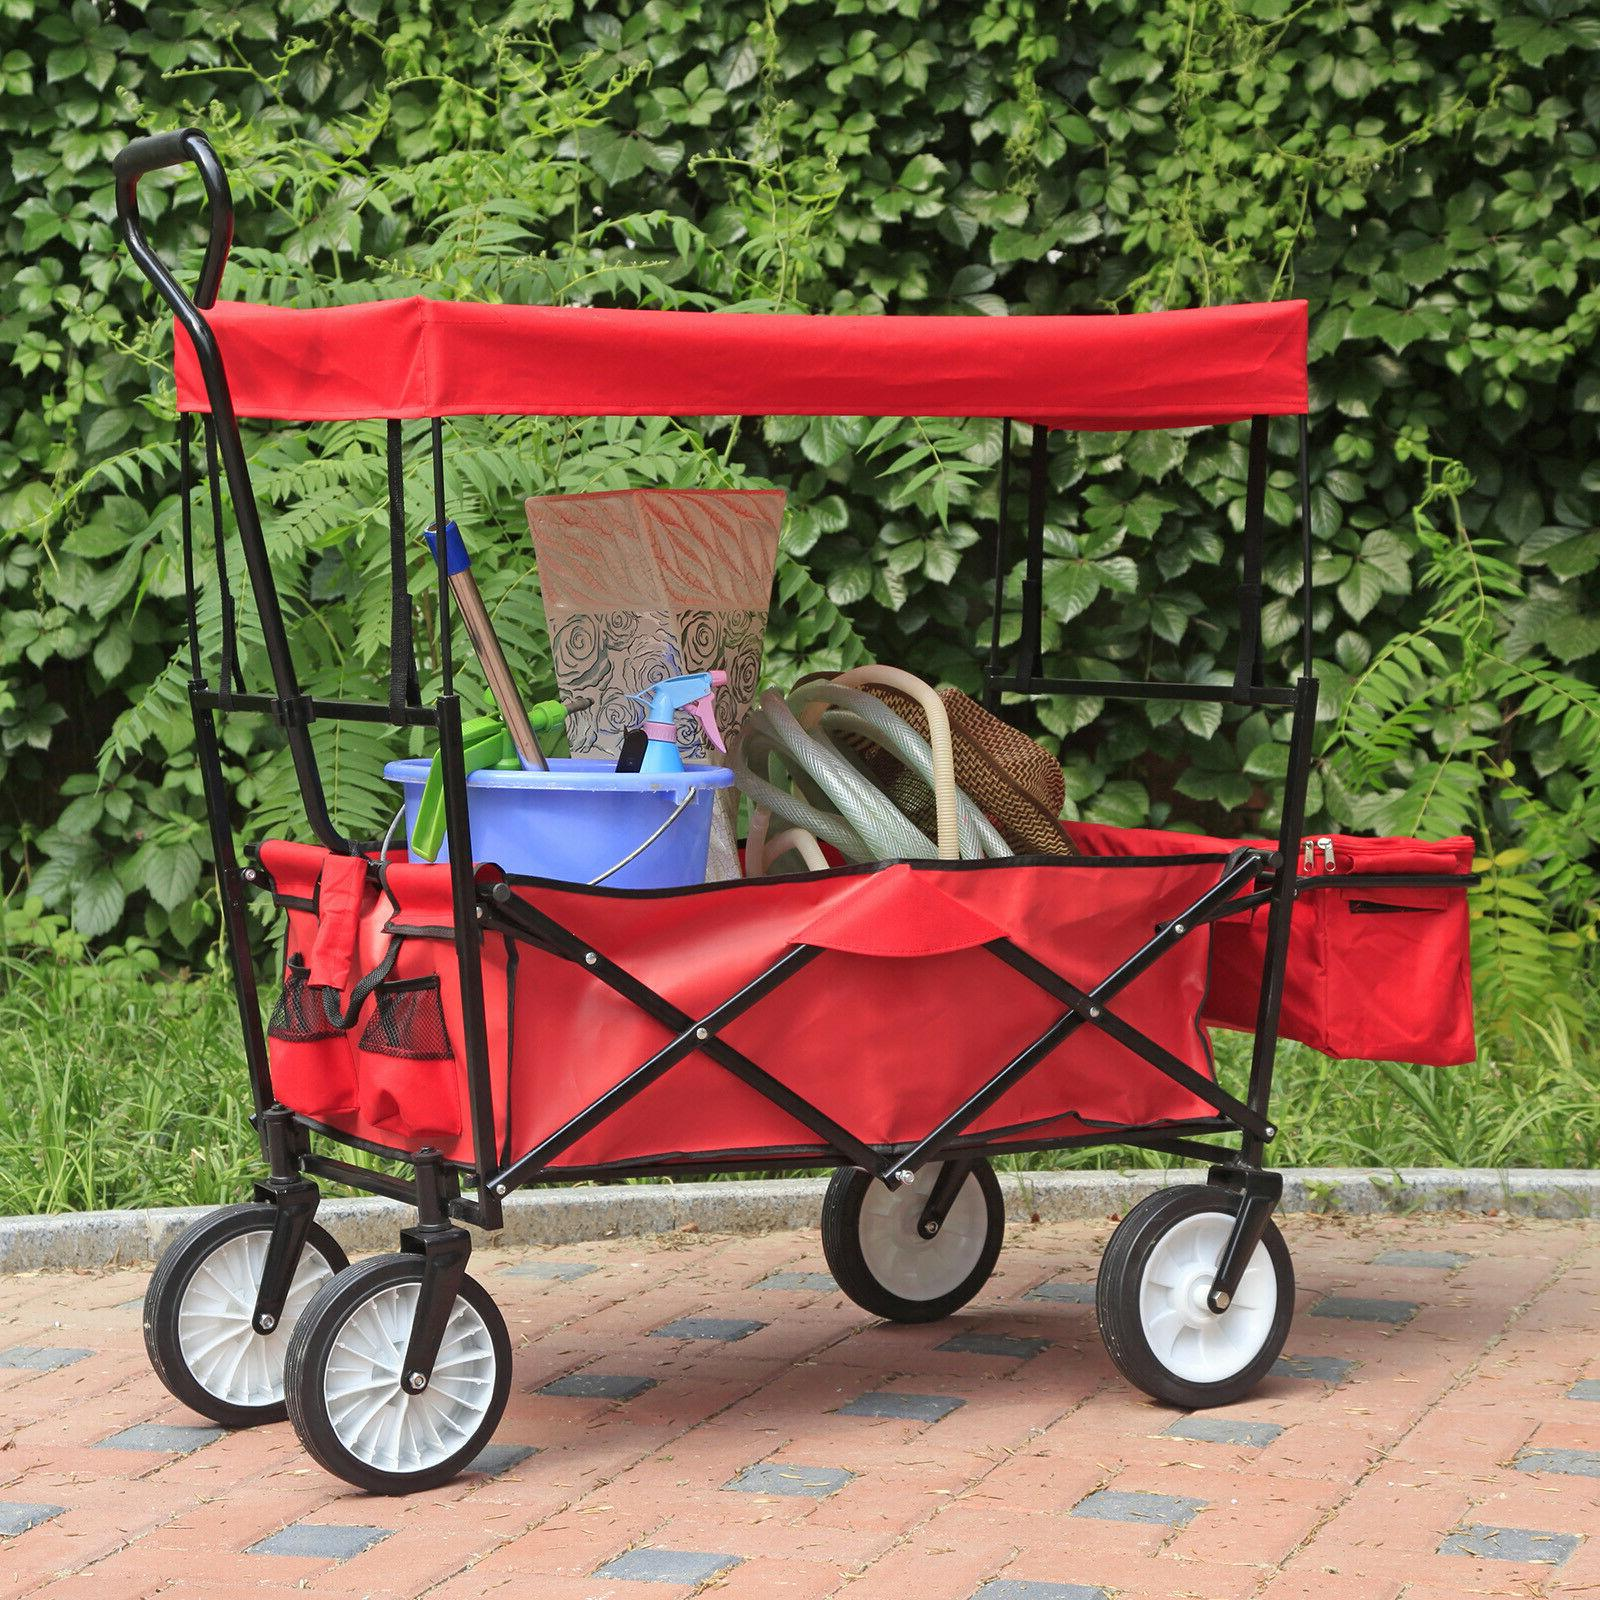 Collapsible Folding Garden Camping Utility with Canopy Red